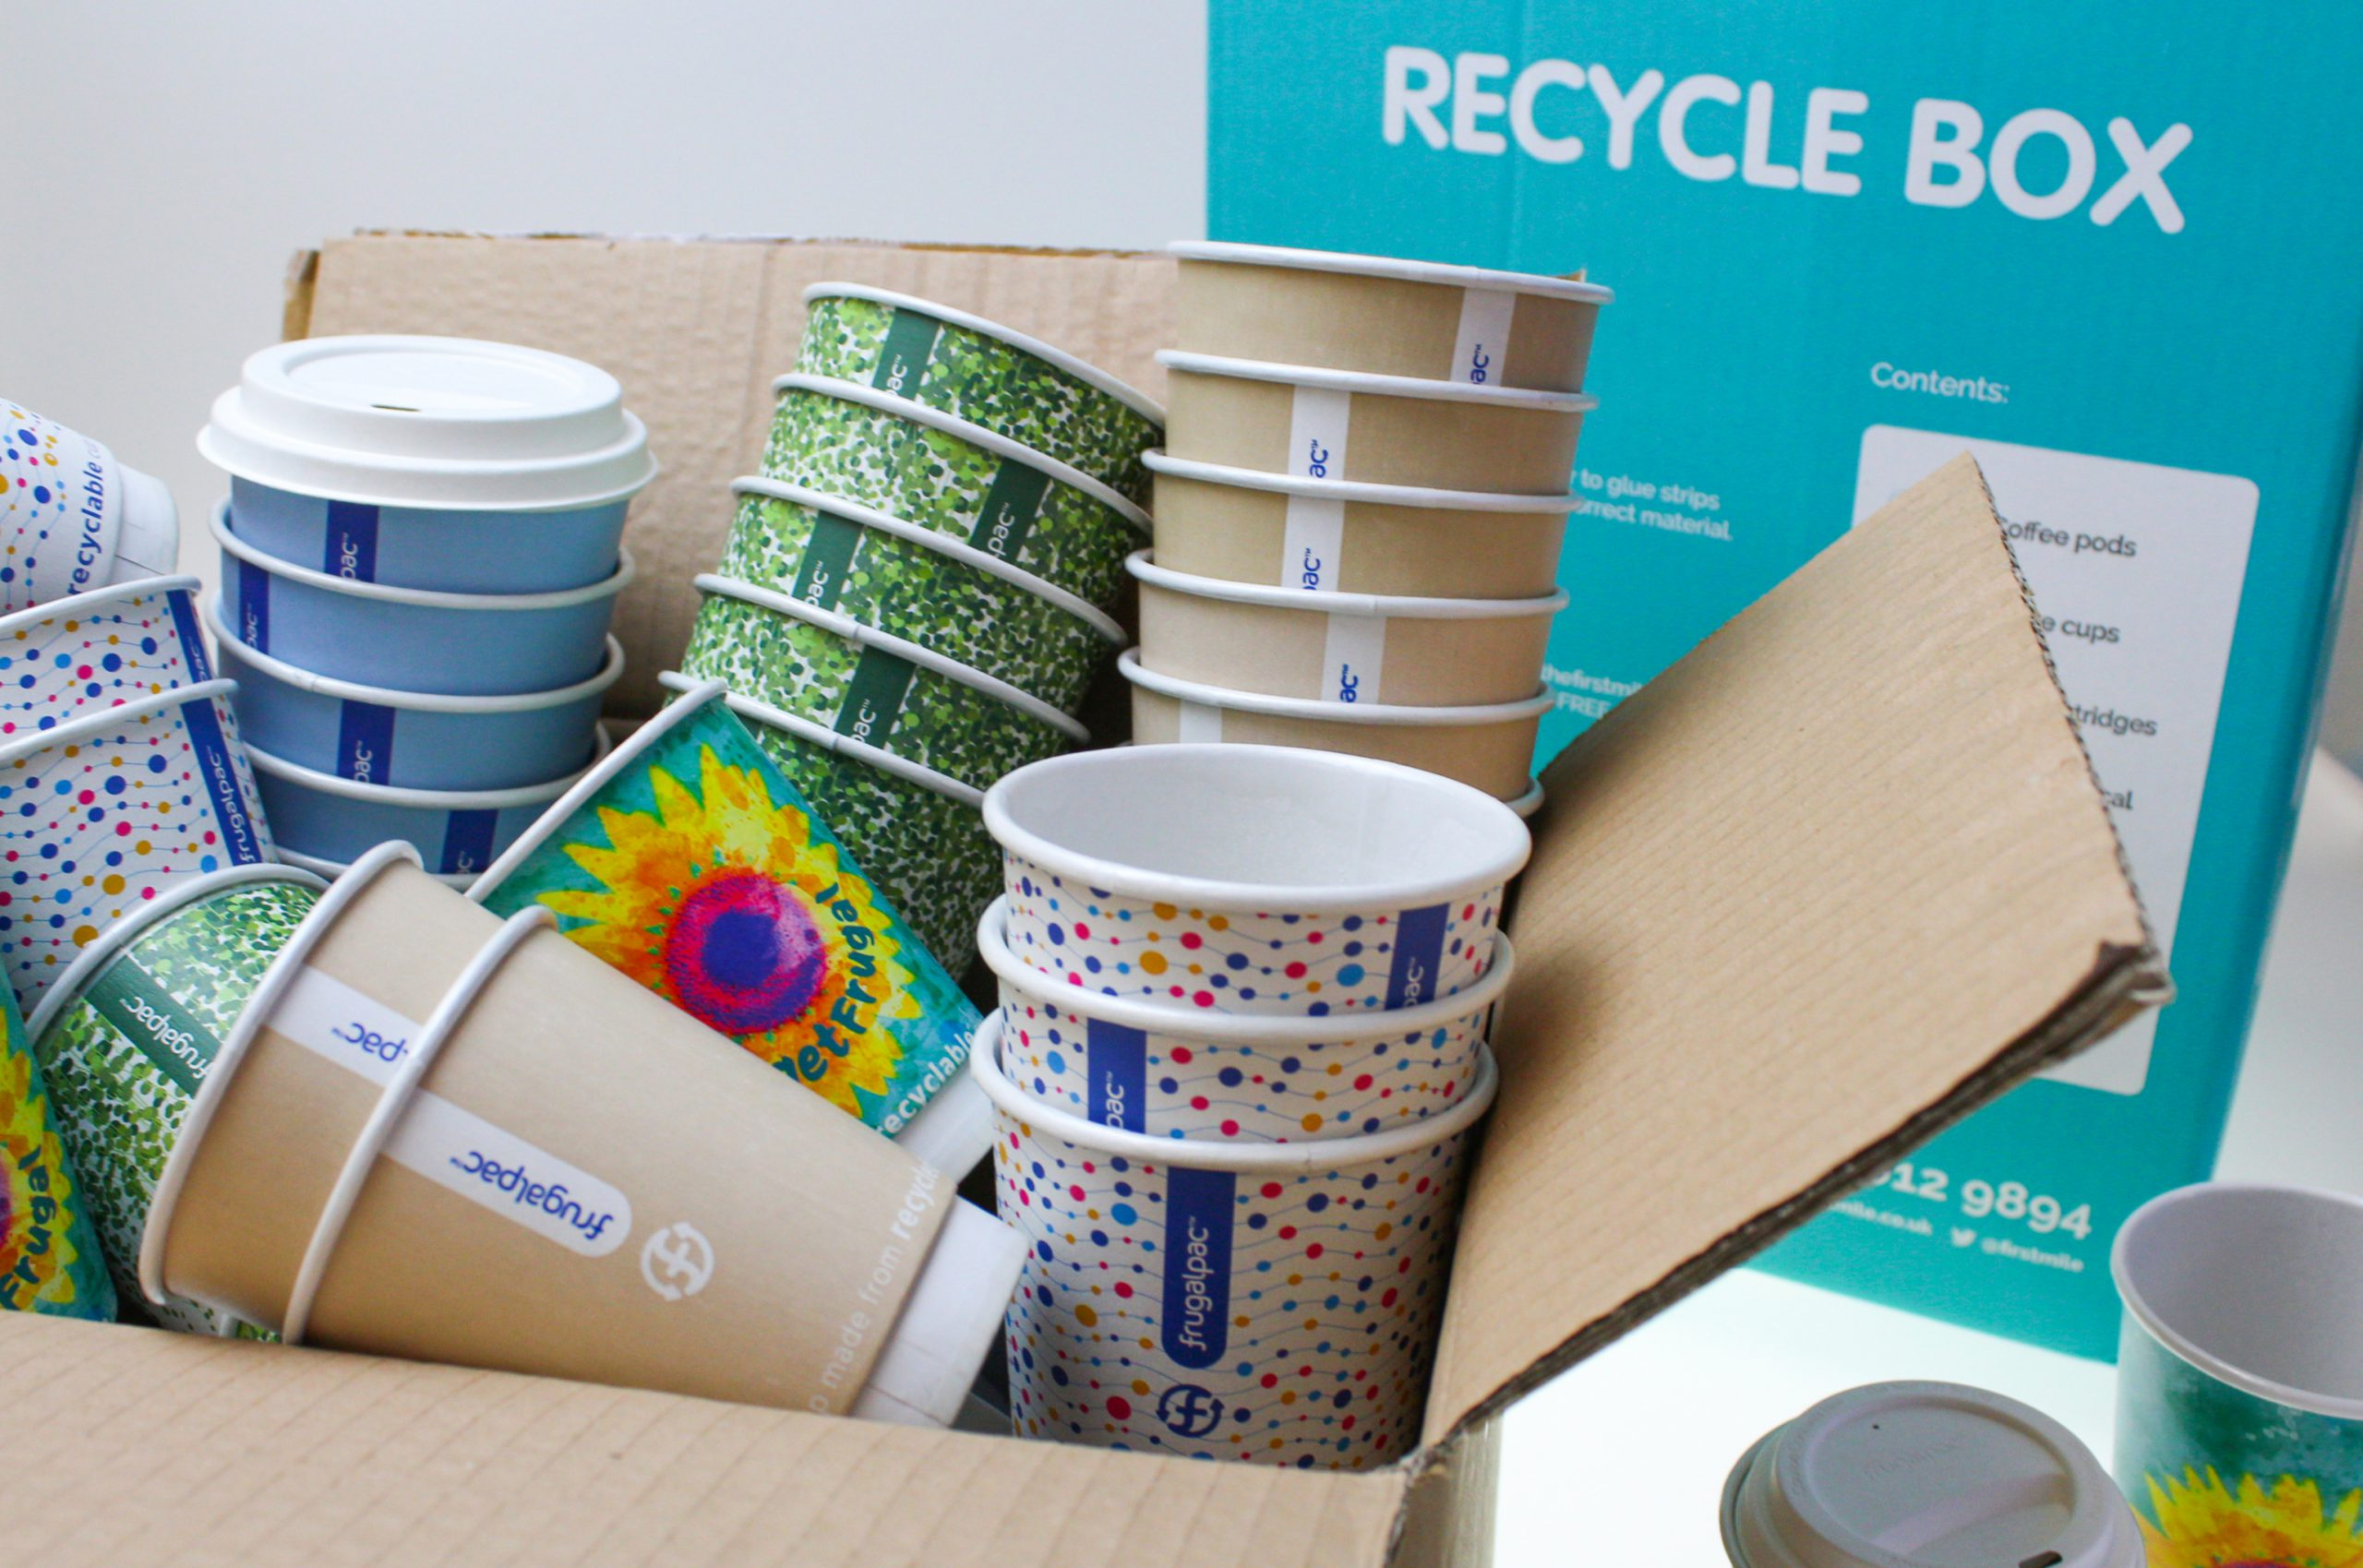 Frugalpac provides RecycleBox service for its Frugal Cup customers